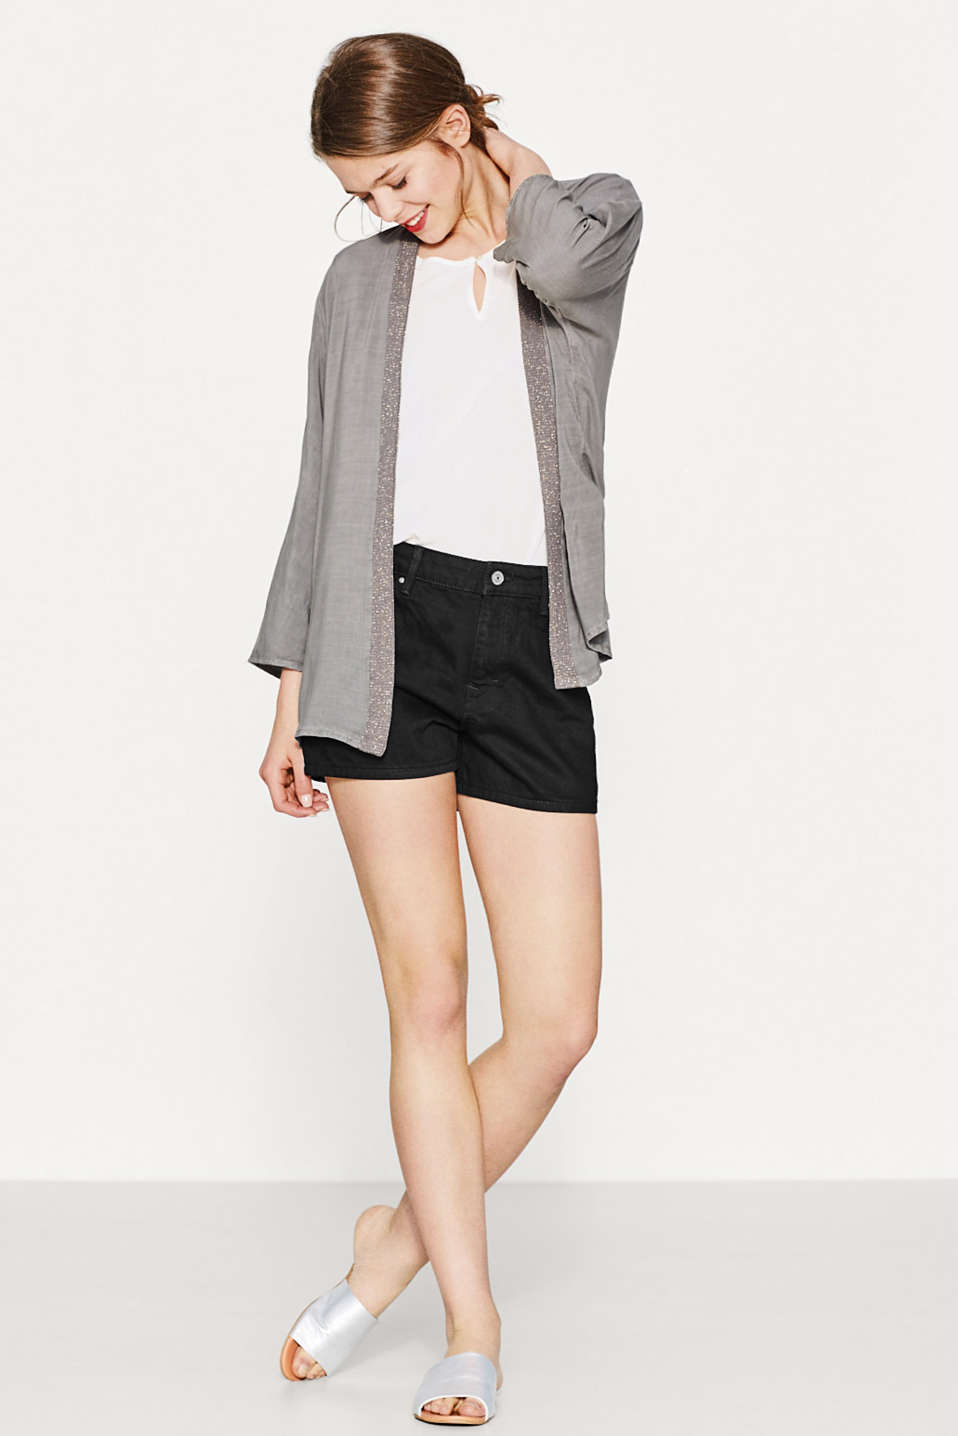 Esprit - Flowing cardigan with sparkling knit edges